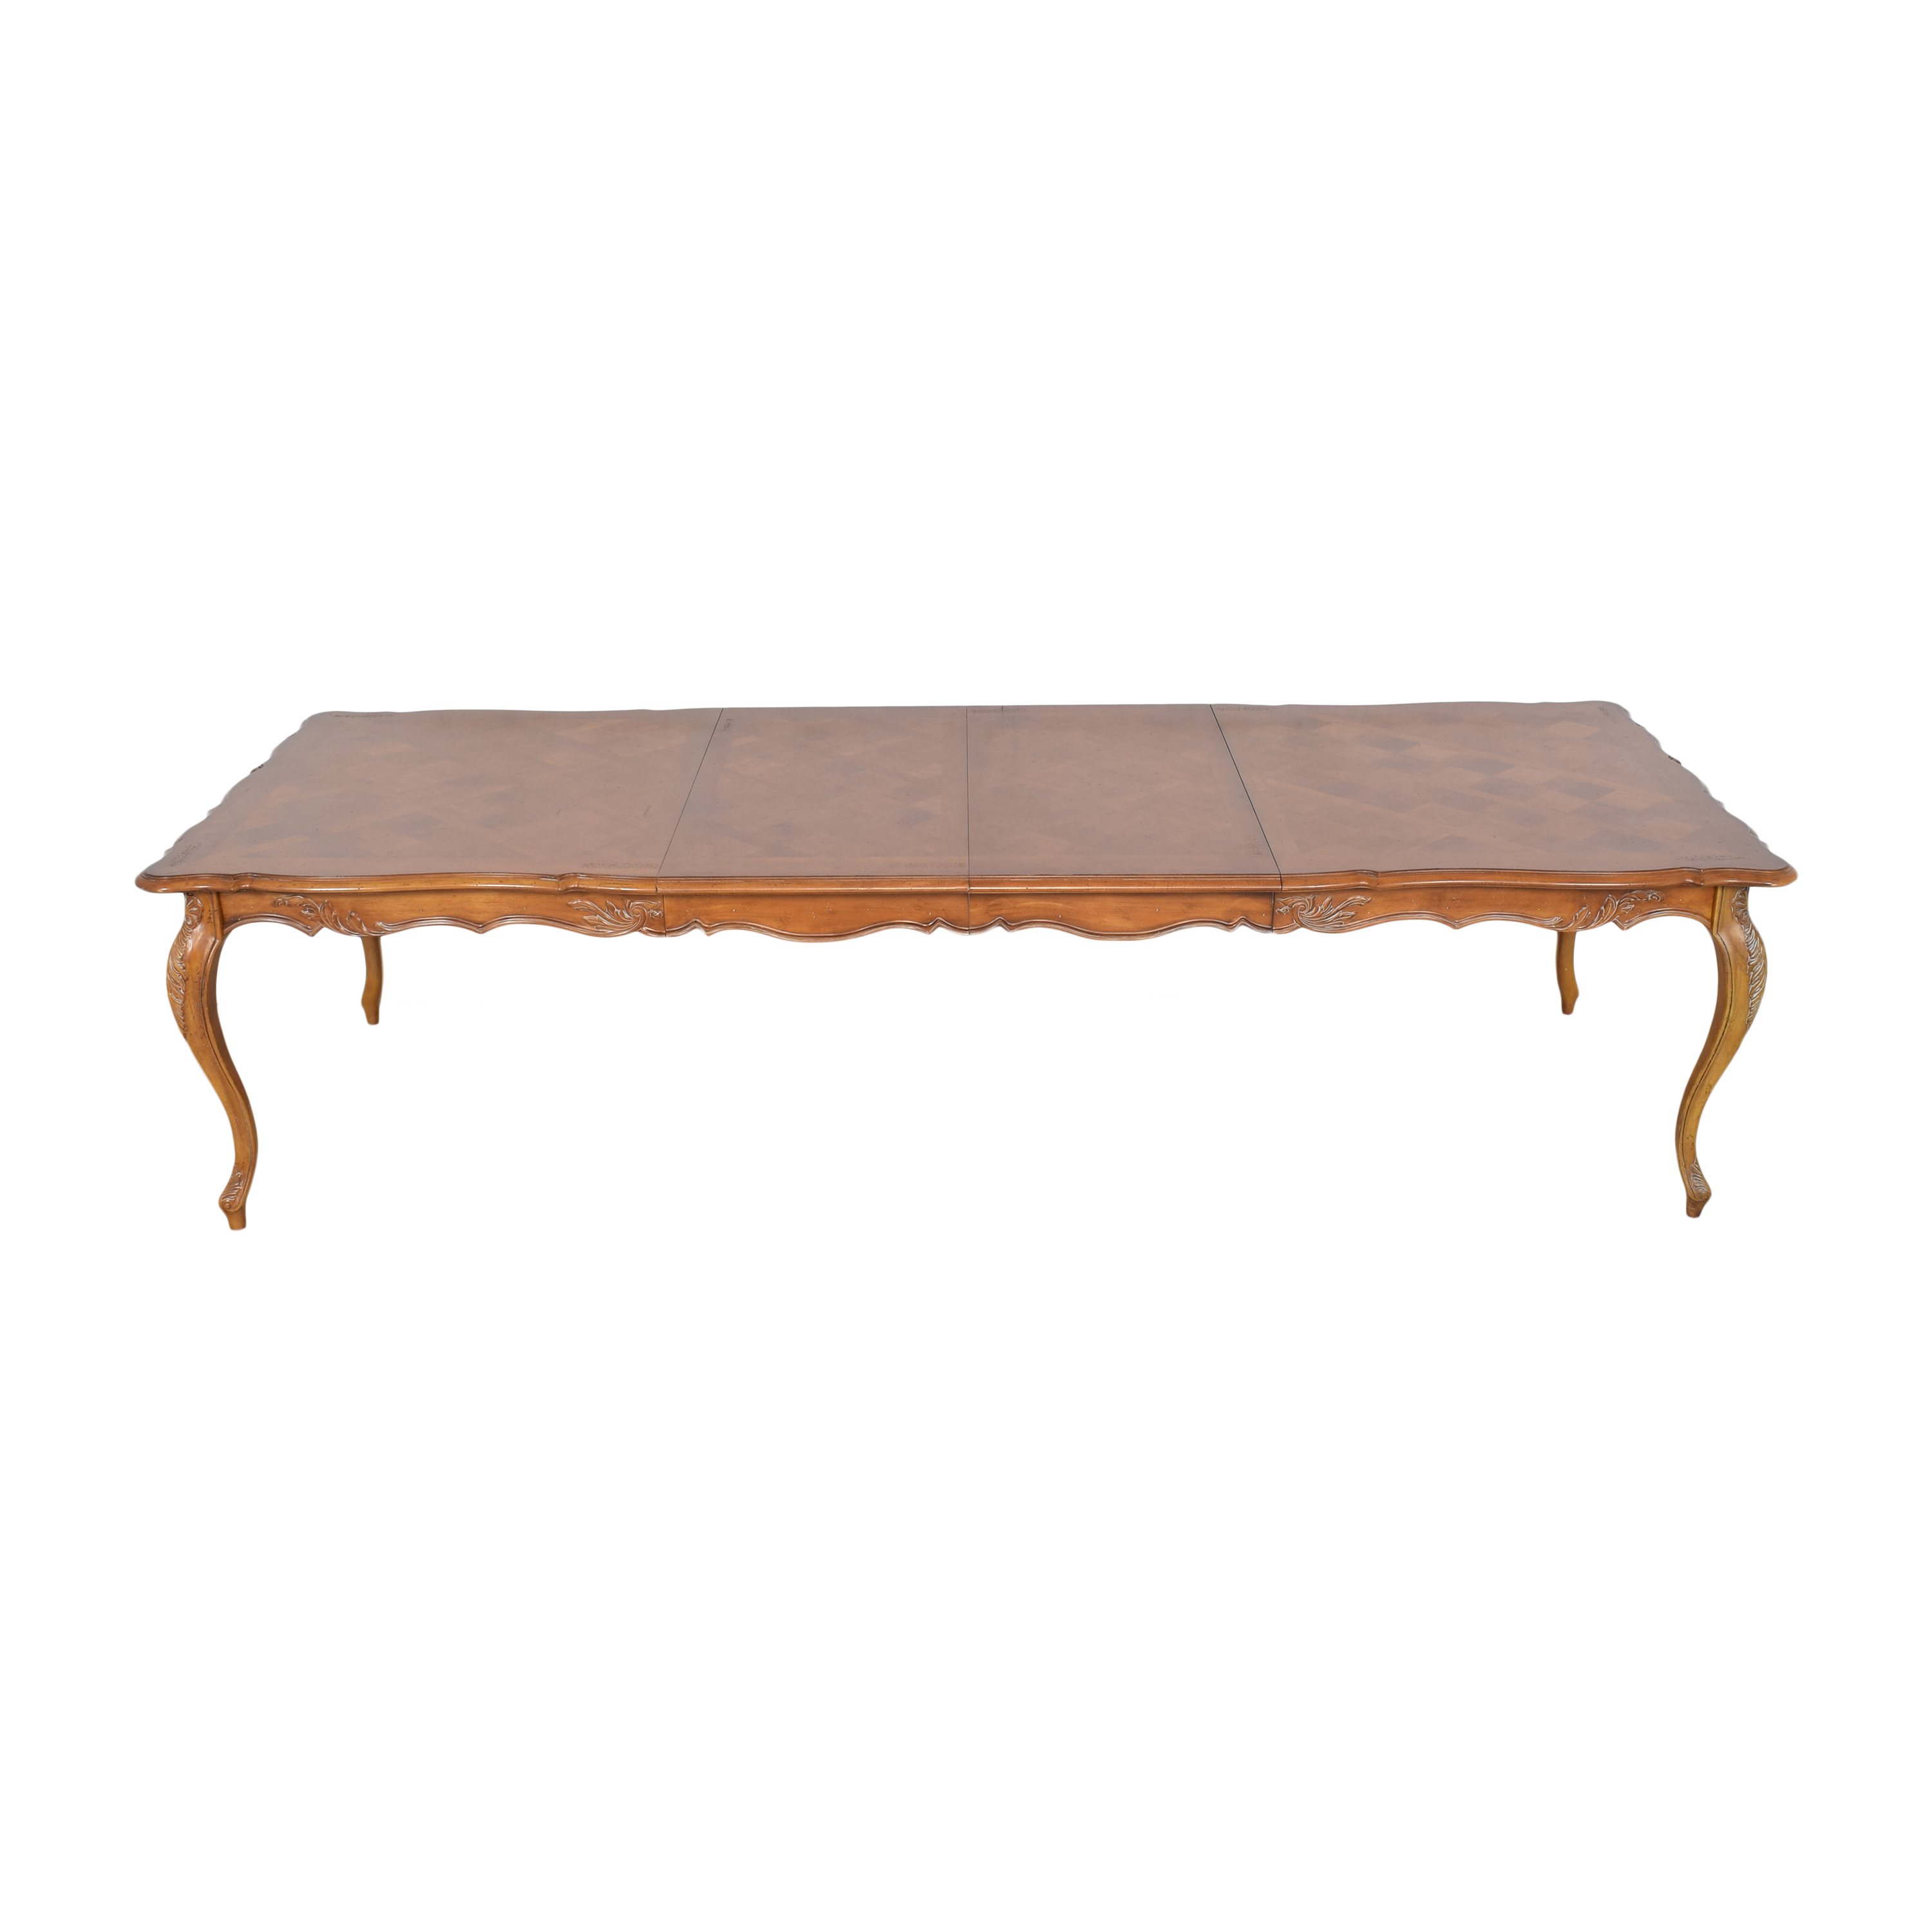 Century Coeur De France Costellane Dining Table / Tables